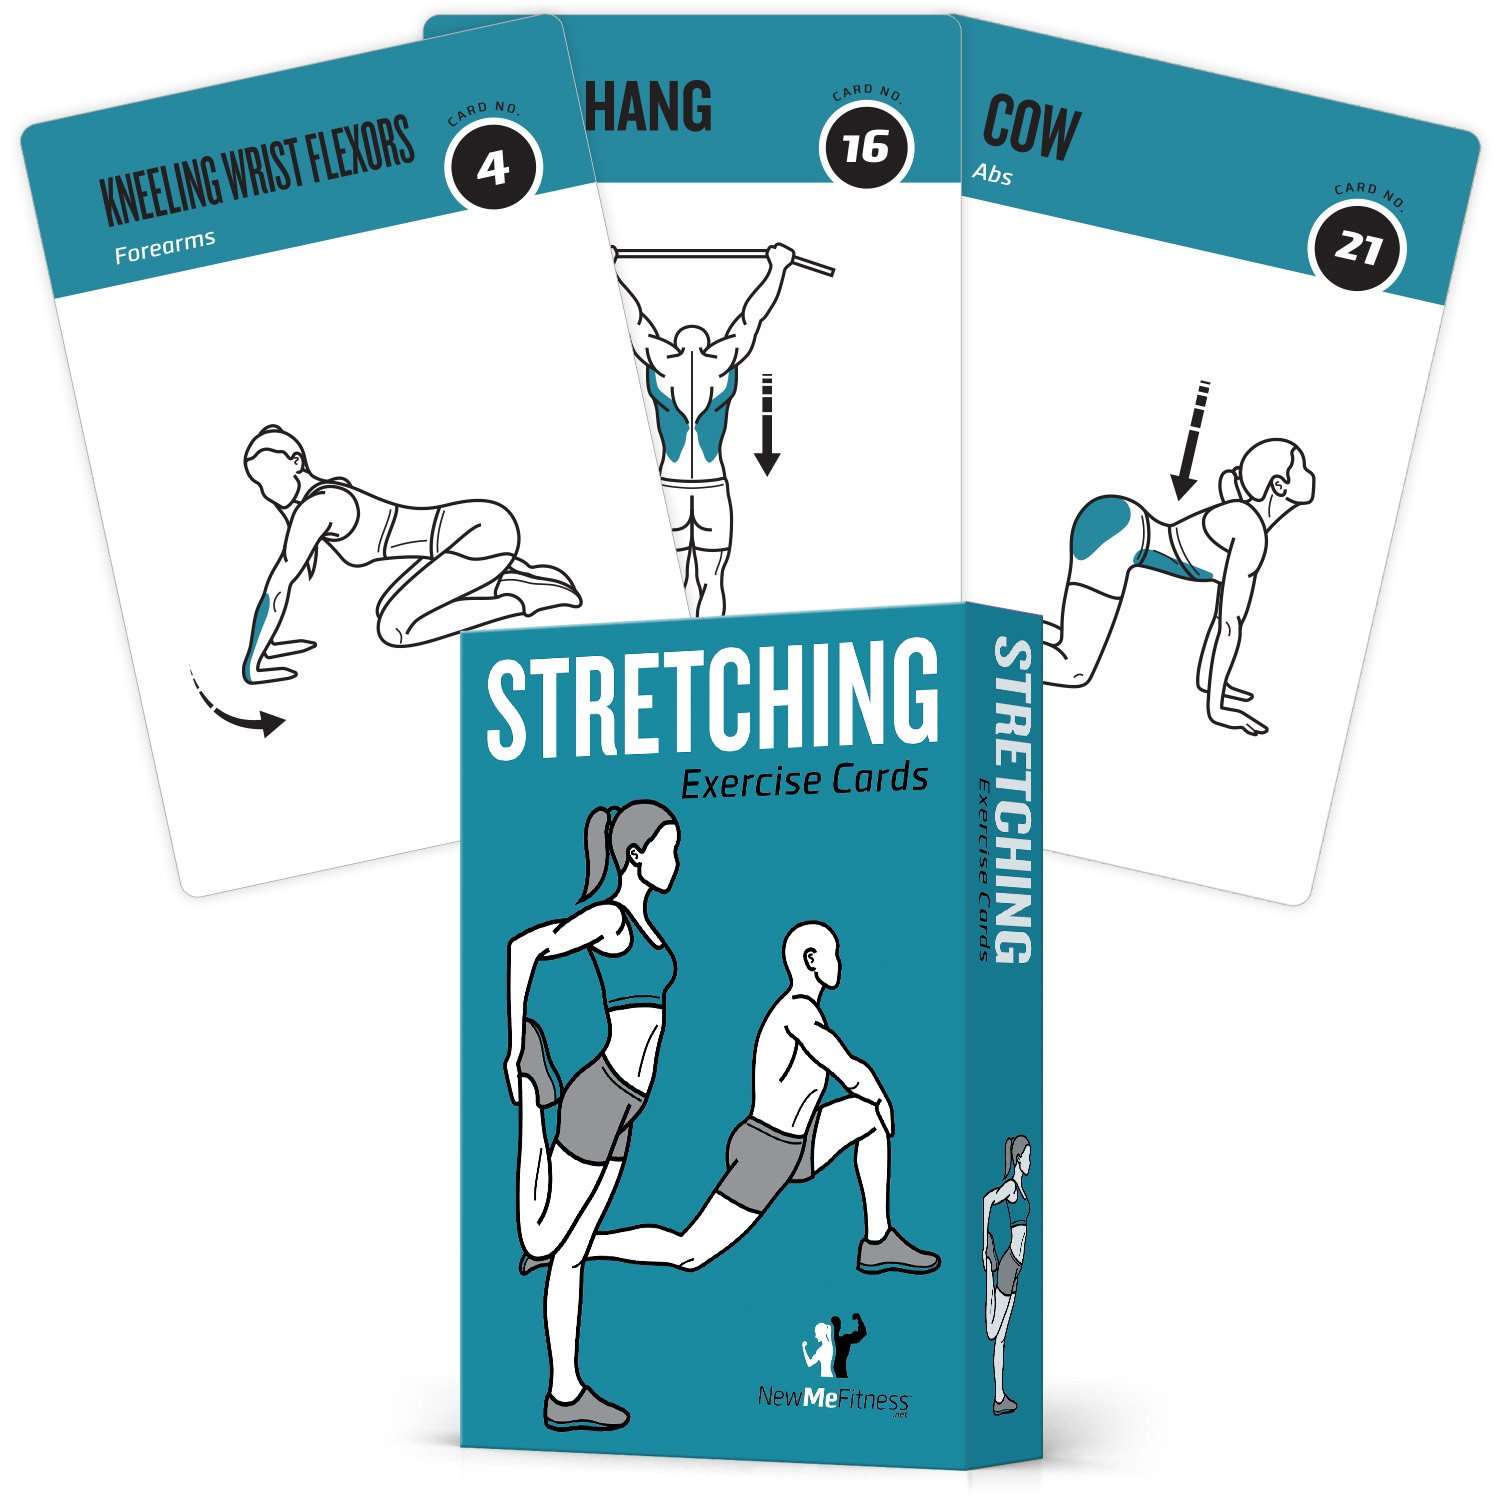 NewMe Fitness Stretching Flexibility Exercise Cards - 50 Stretching Exercises - Increase Flexibility - Prevent Muscle Strains, Promote Circulation + Speed up Recovery Time - Large, Durable Cards by NewMe Fitness